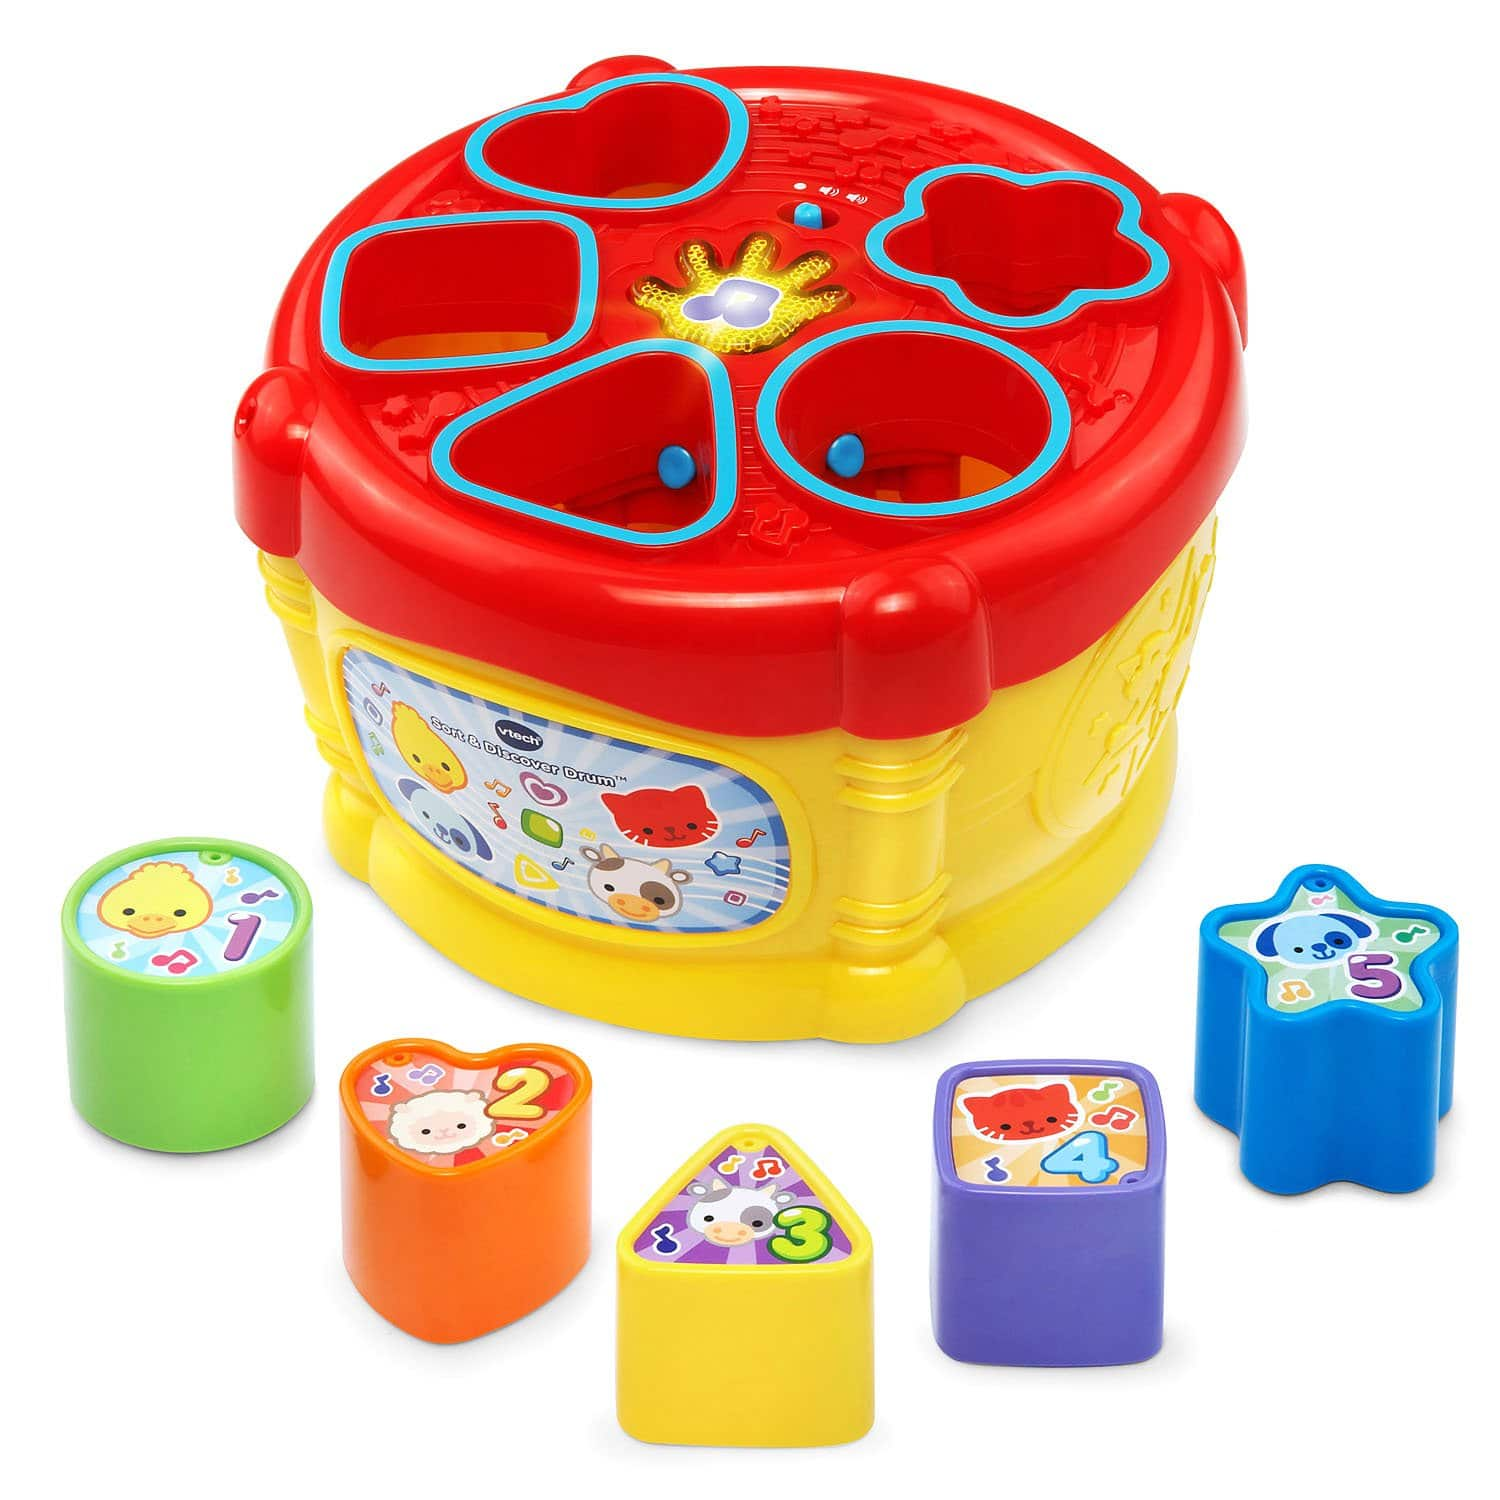 VTech Sort and Discover Drum $5.19 + Free Store Pickup @ Target